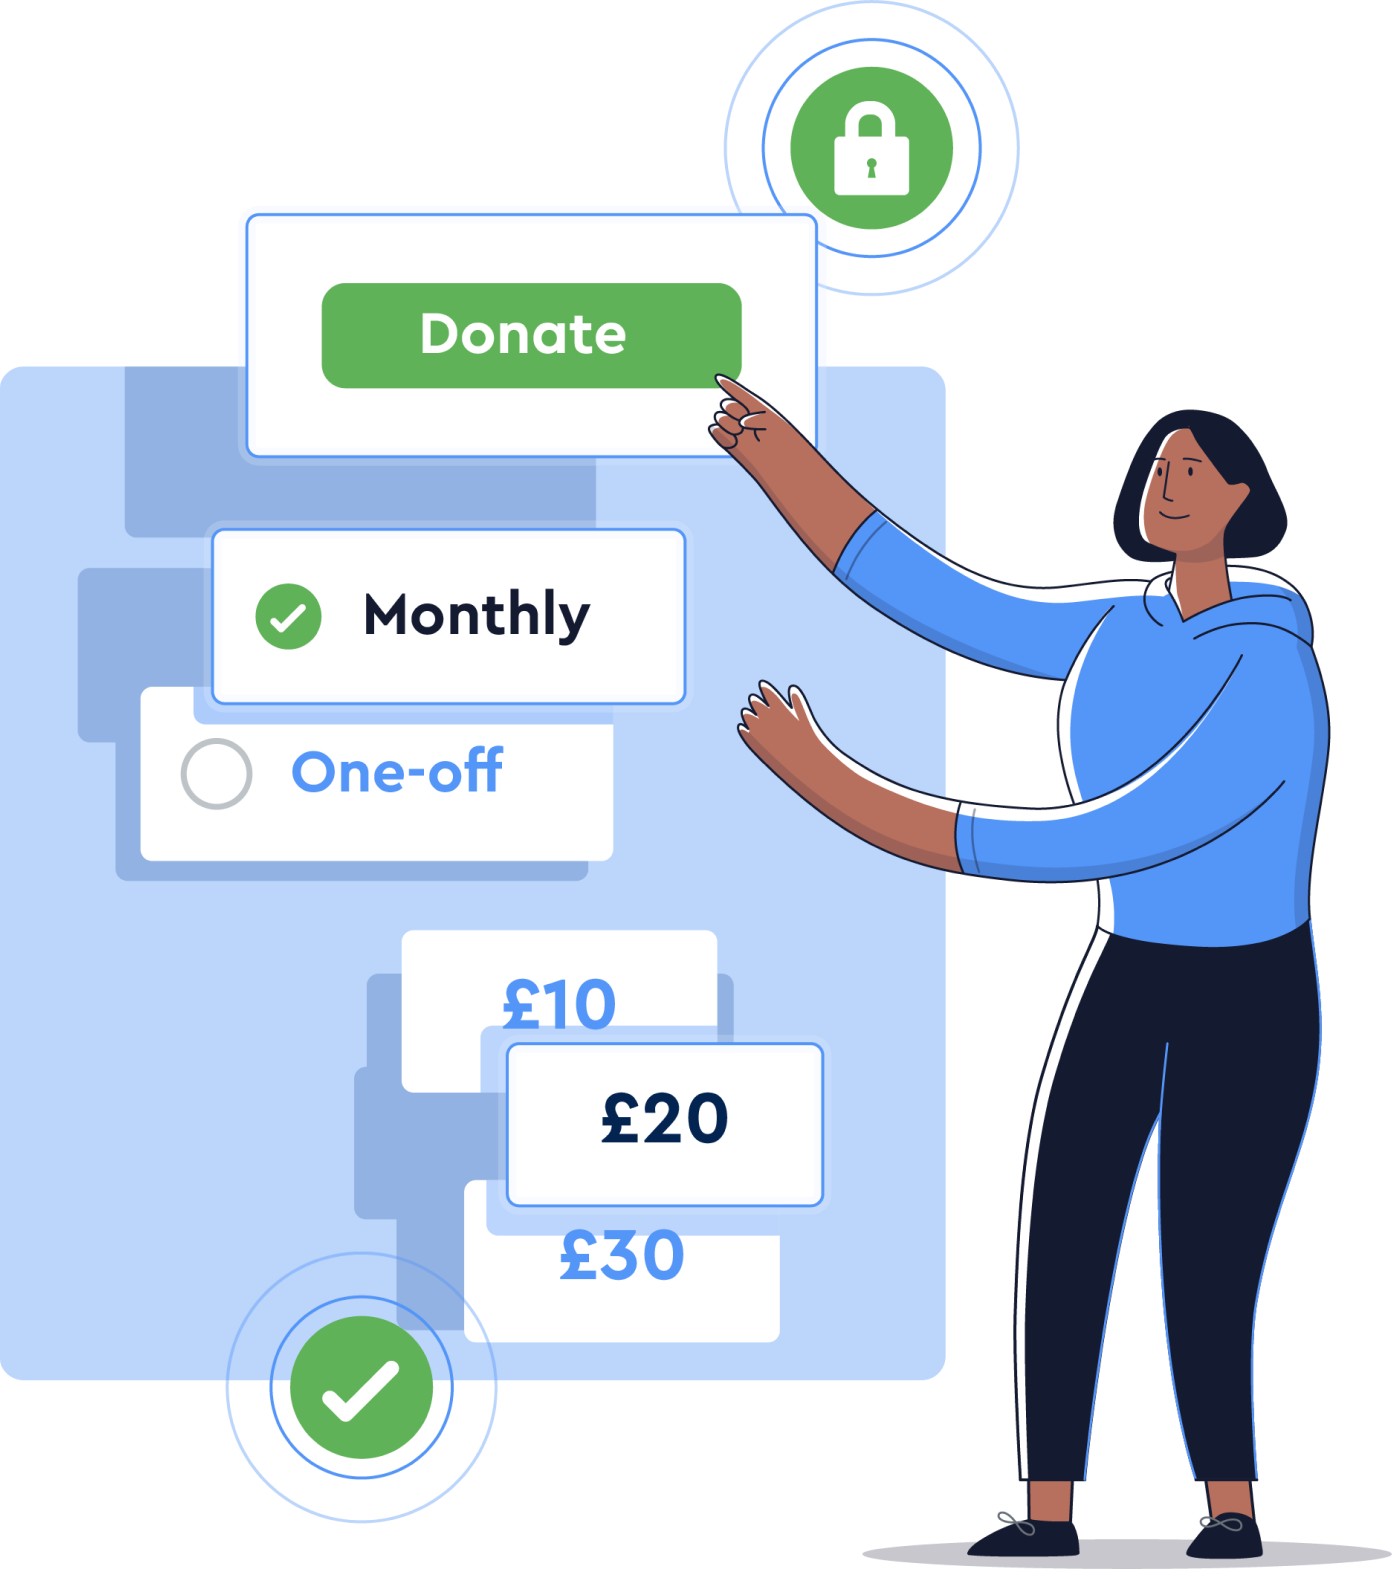 Enthuse Donations - Allow supporters to donate one-off or monthly